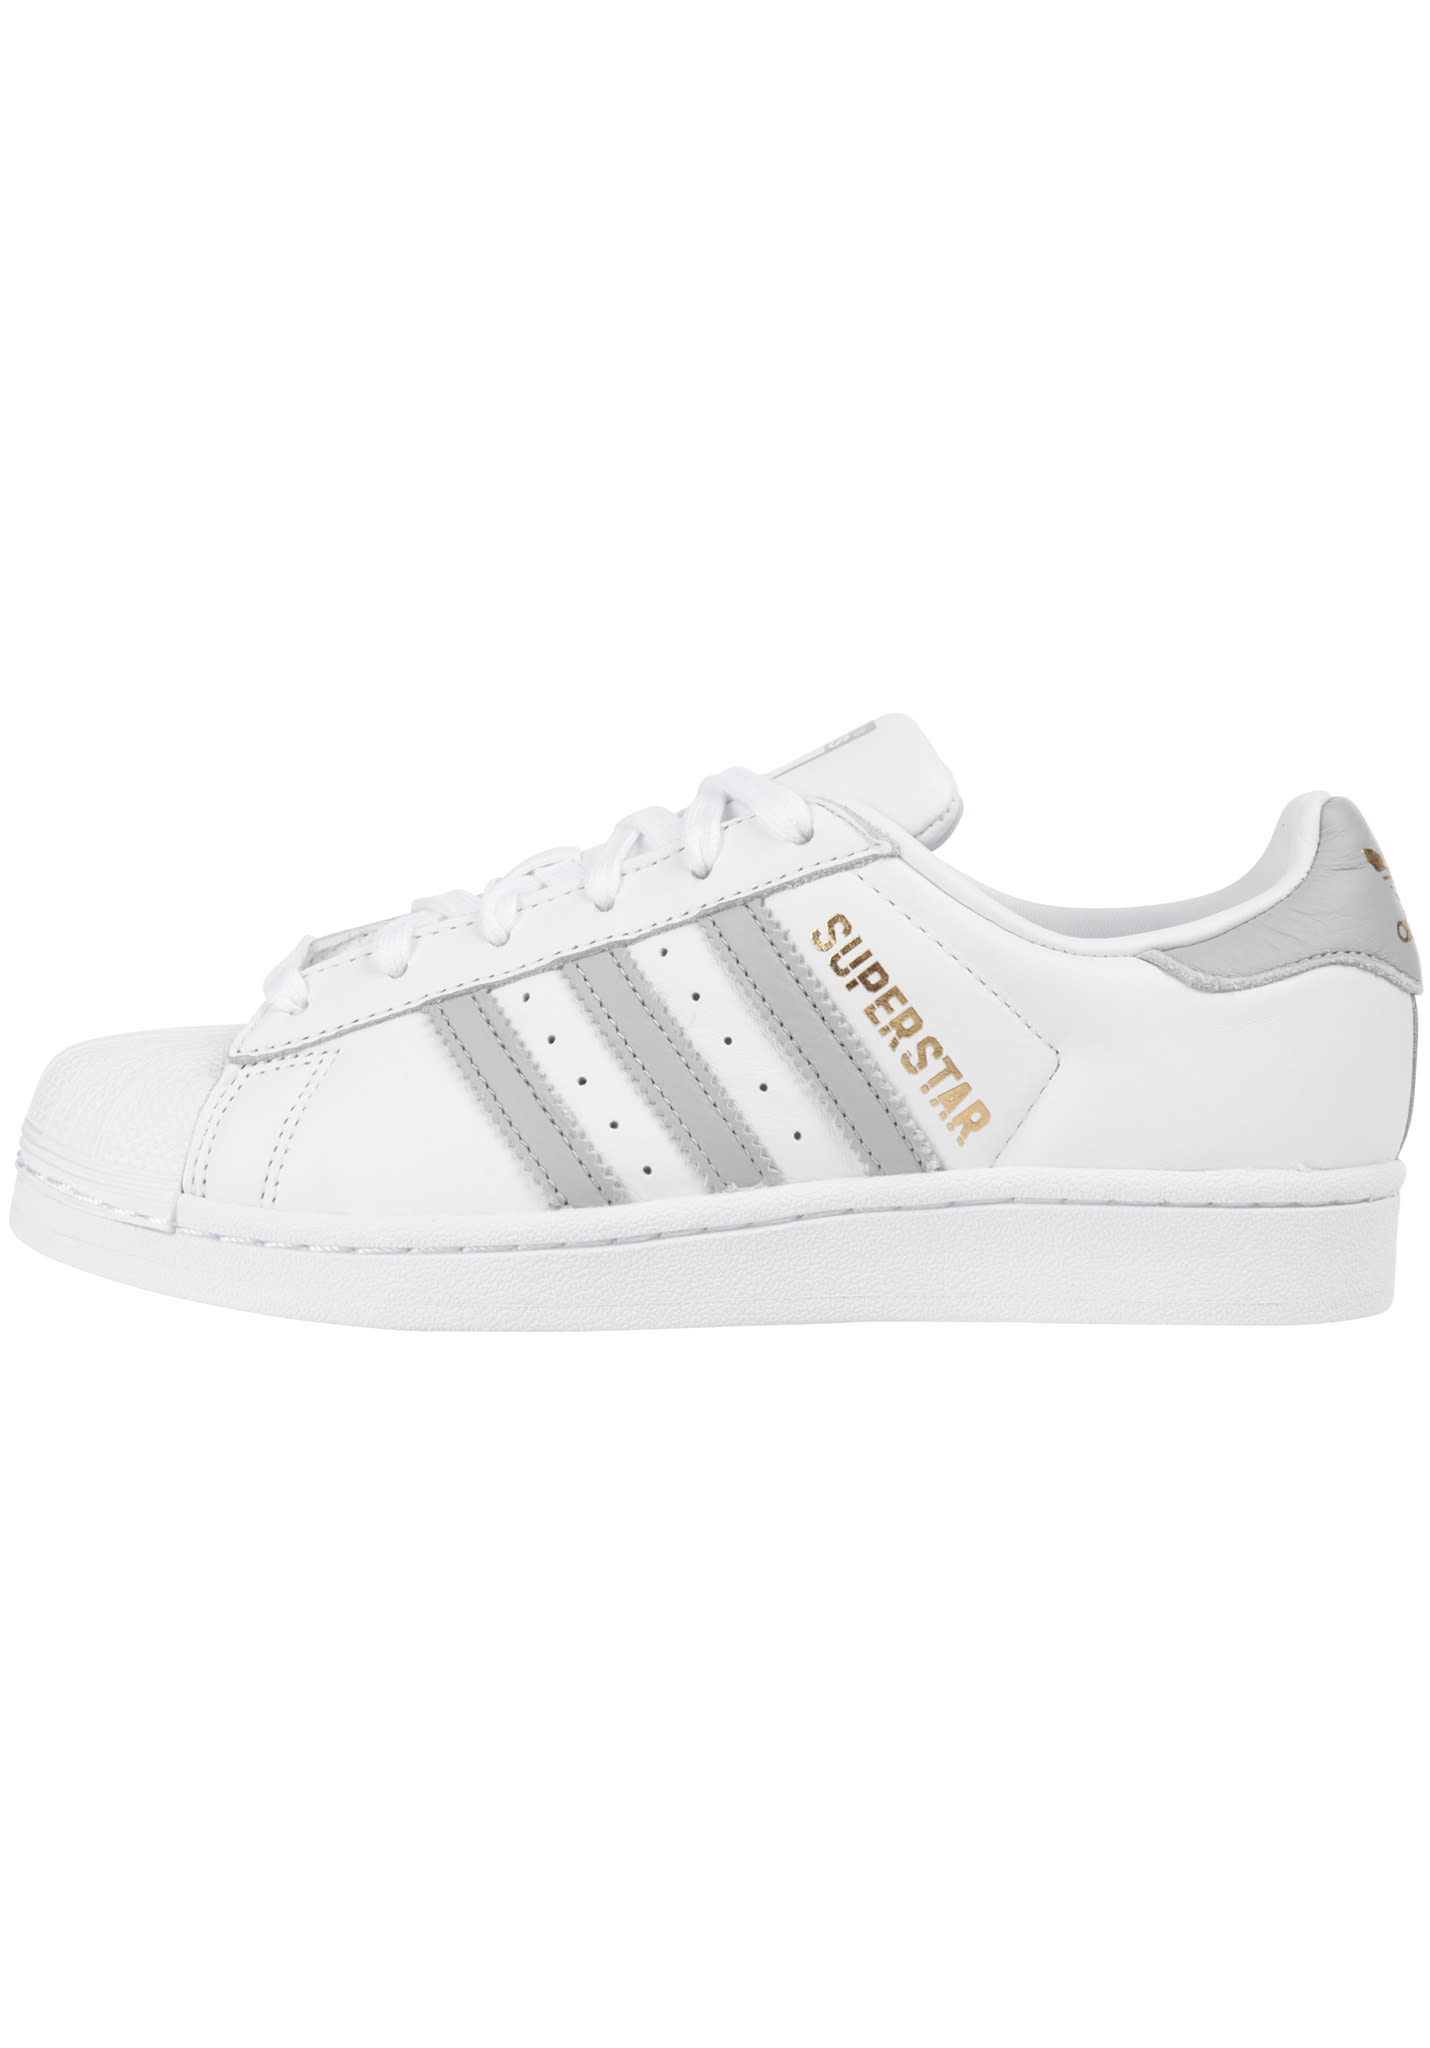 pretty nice 40030 da6d4 ADIDAS ORIGINALS Superstar - Sneakers for Women - White - Pl